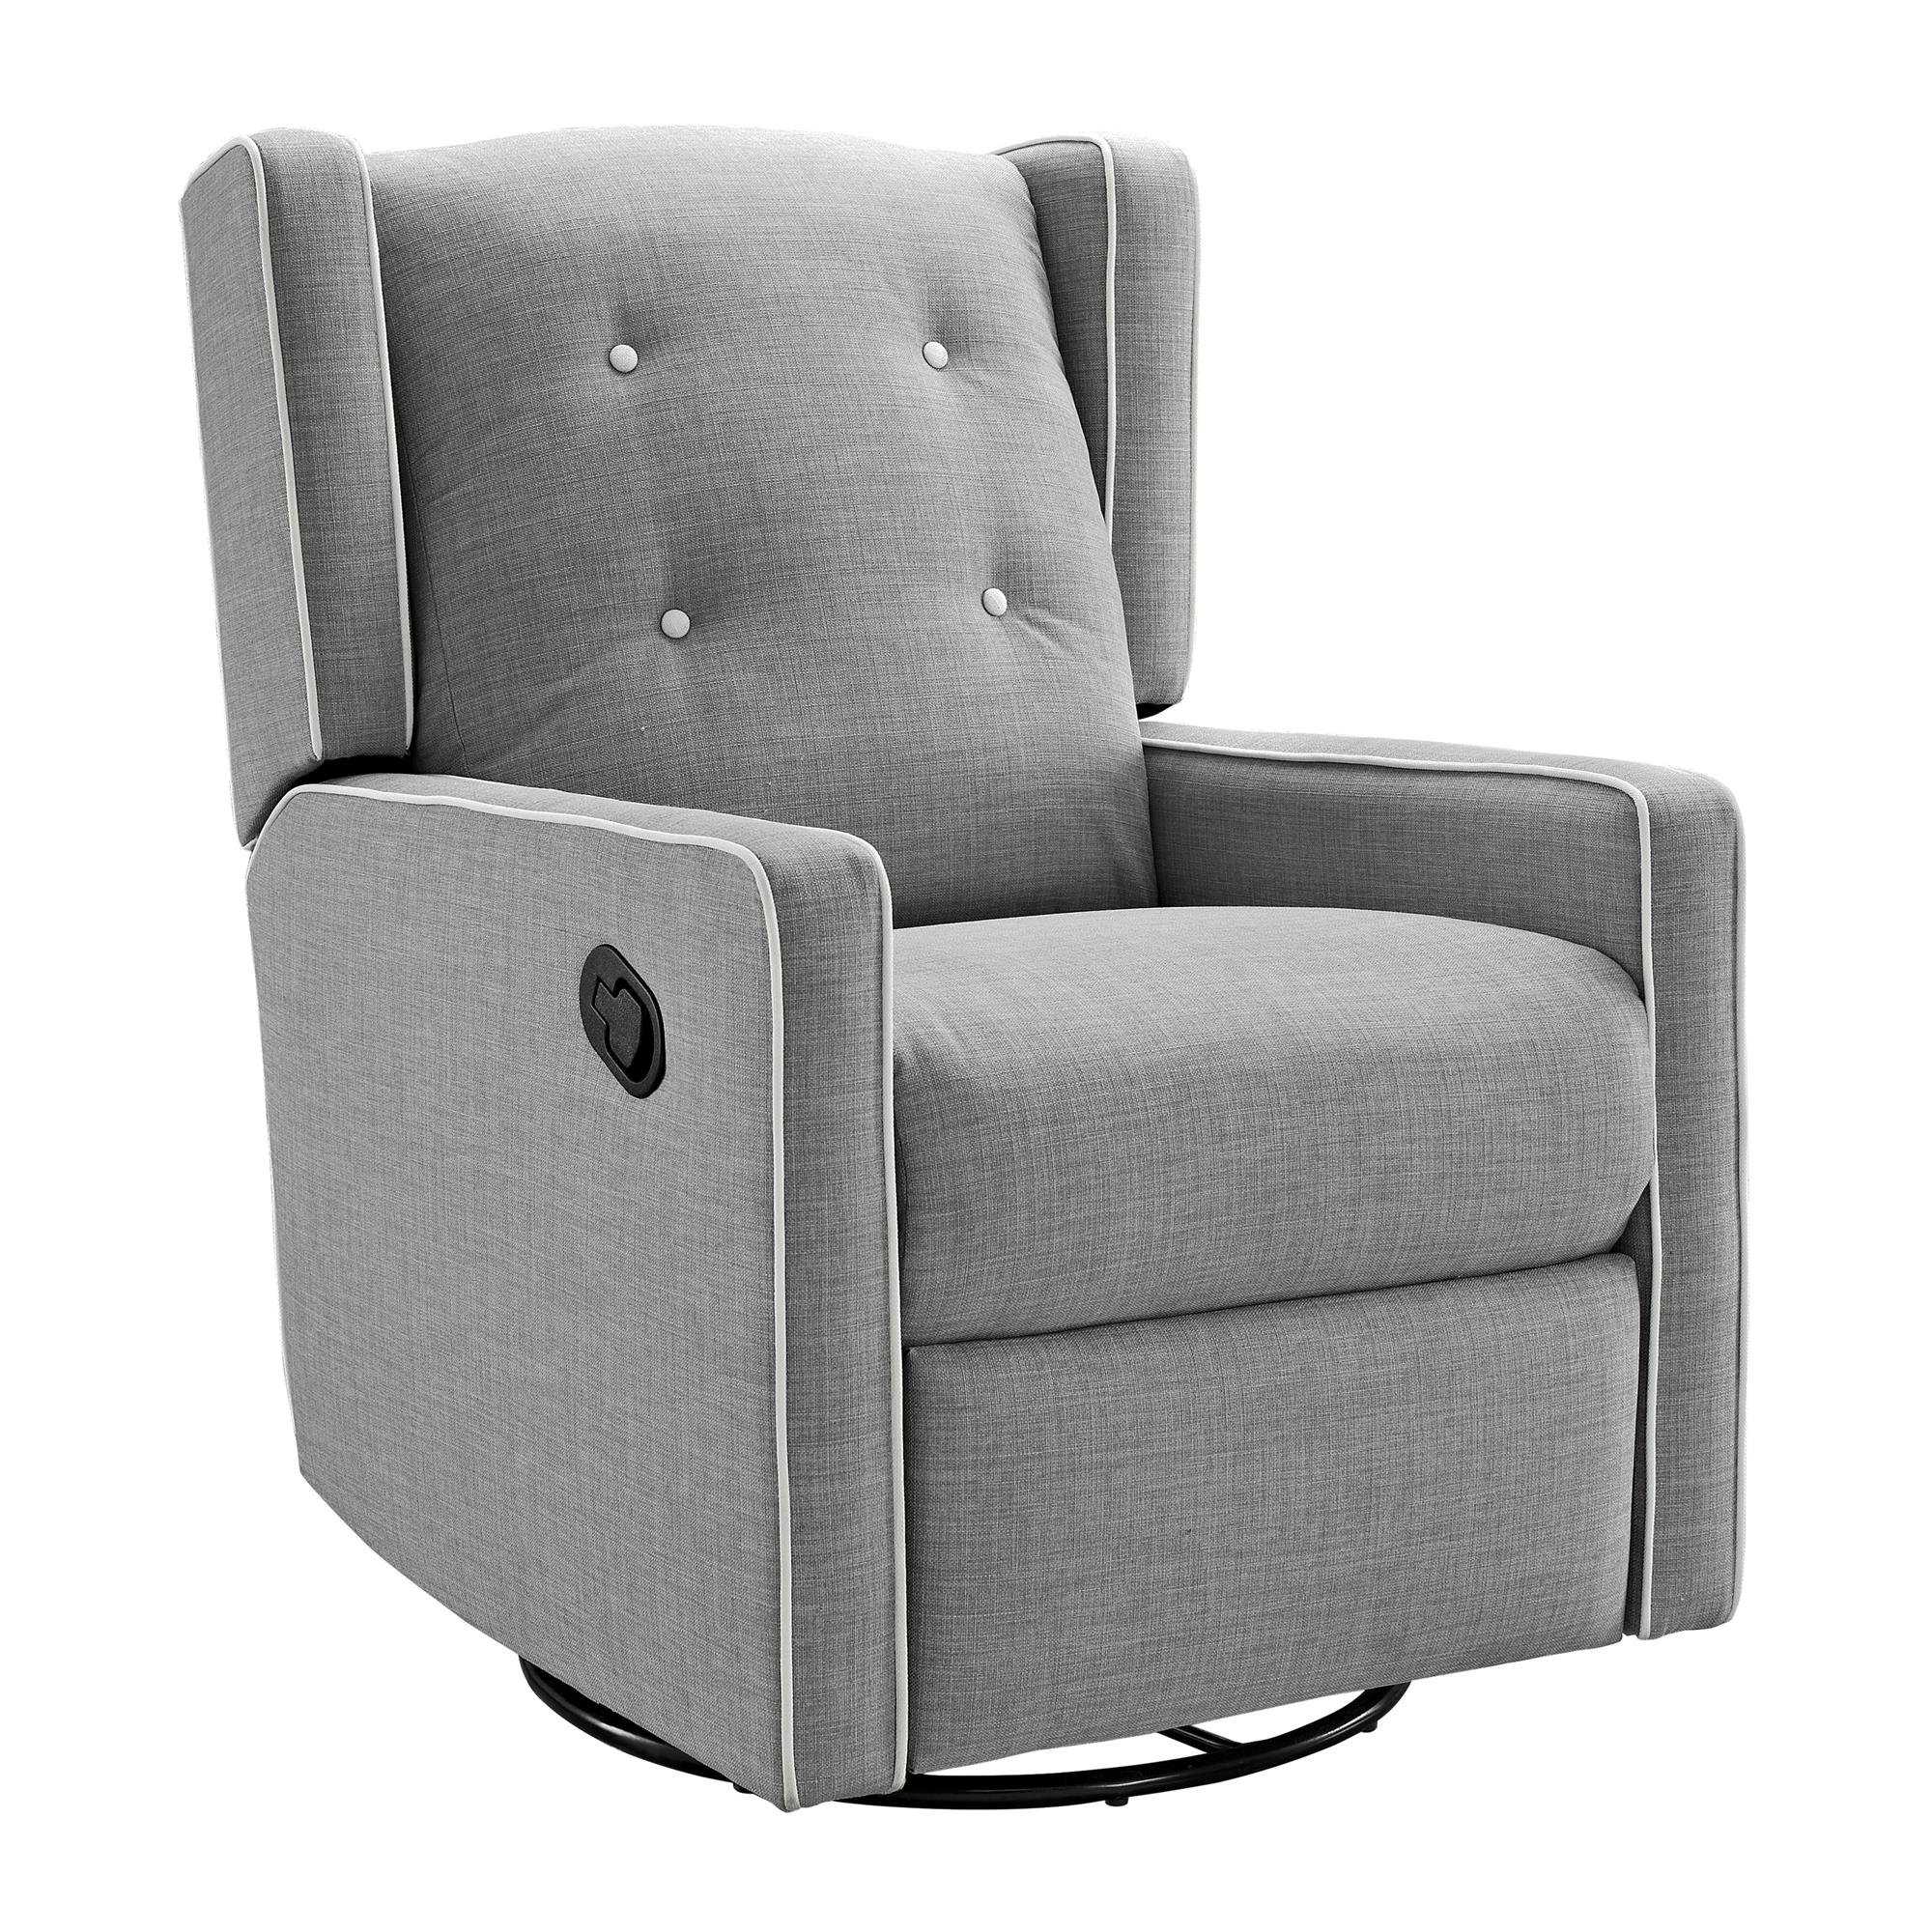 Baby Relax Mikayla Swivel Gliding Recliner, Gray Linen by Baby Relax